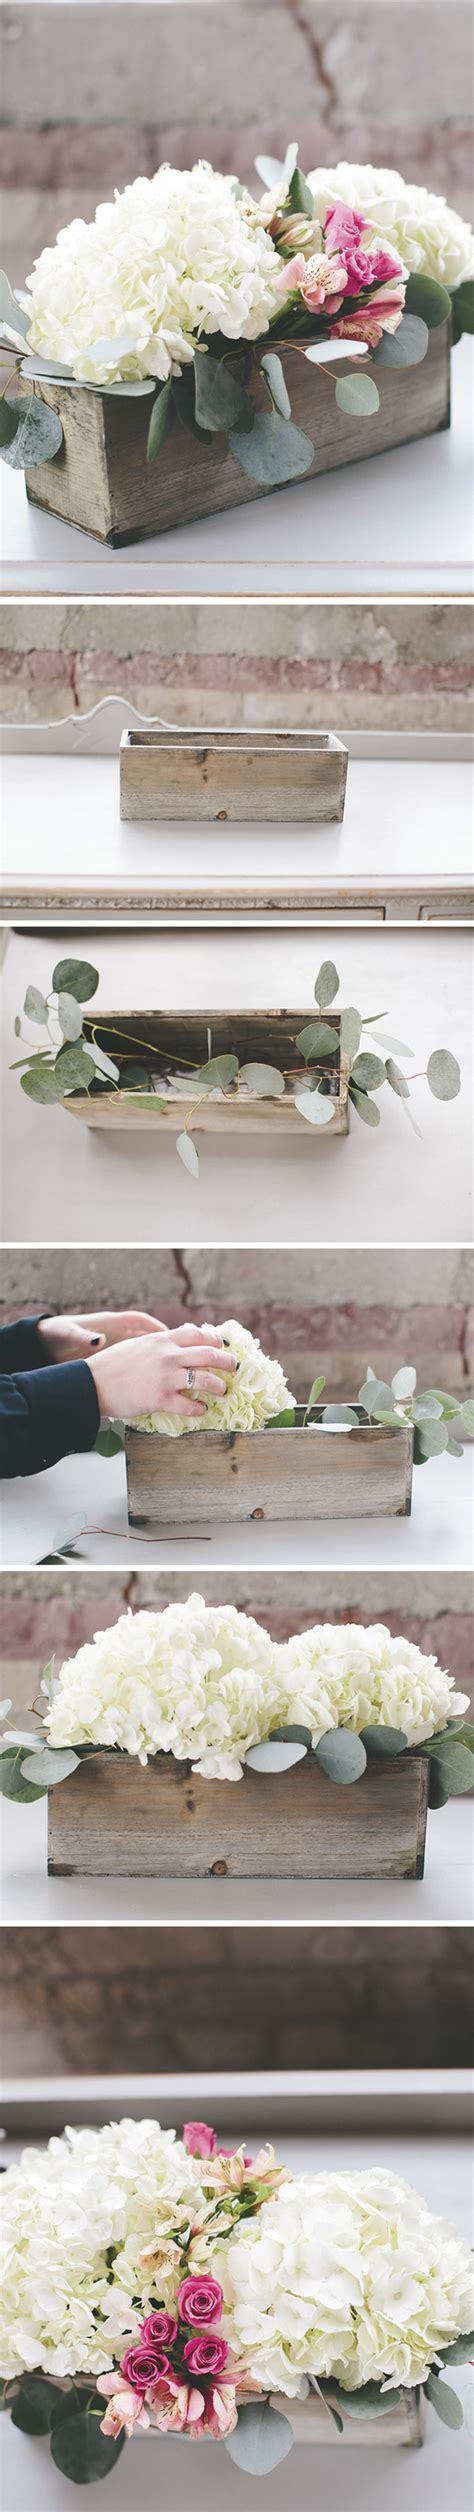 10 creative diy wedding centerpieces with tutorials